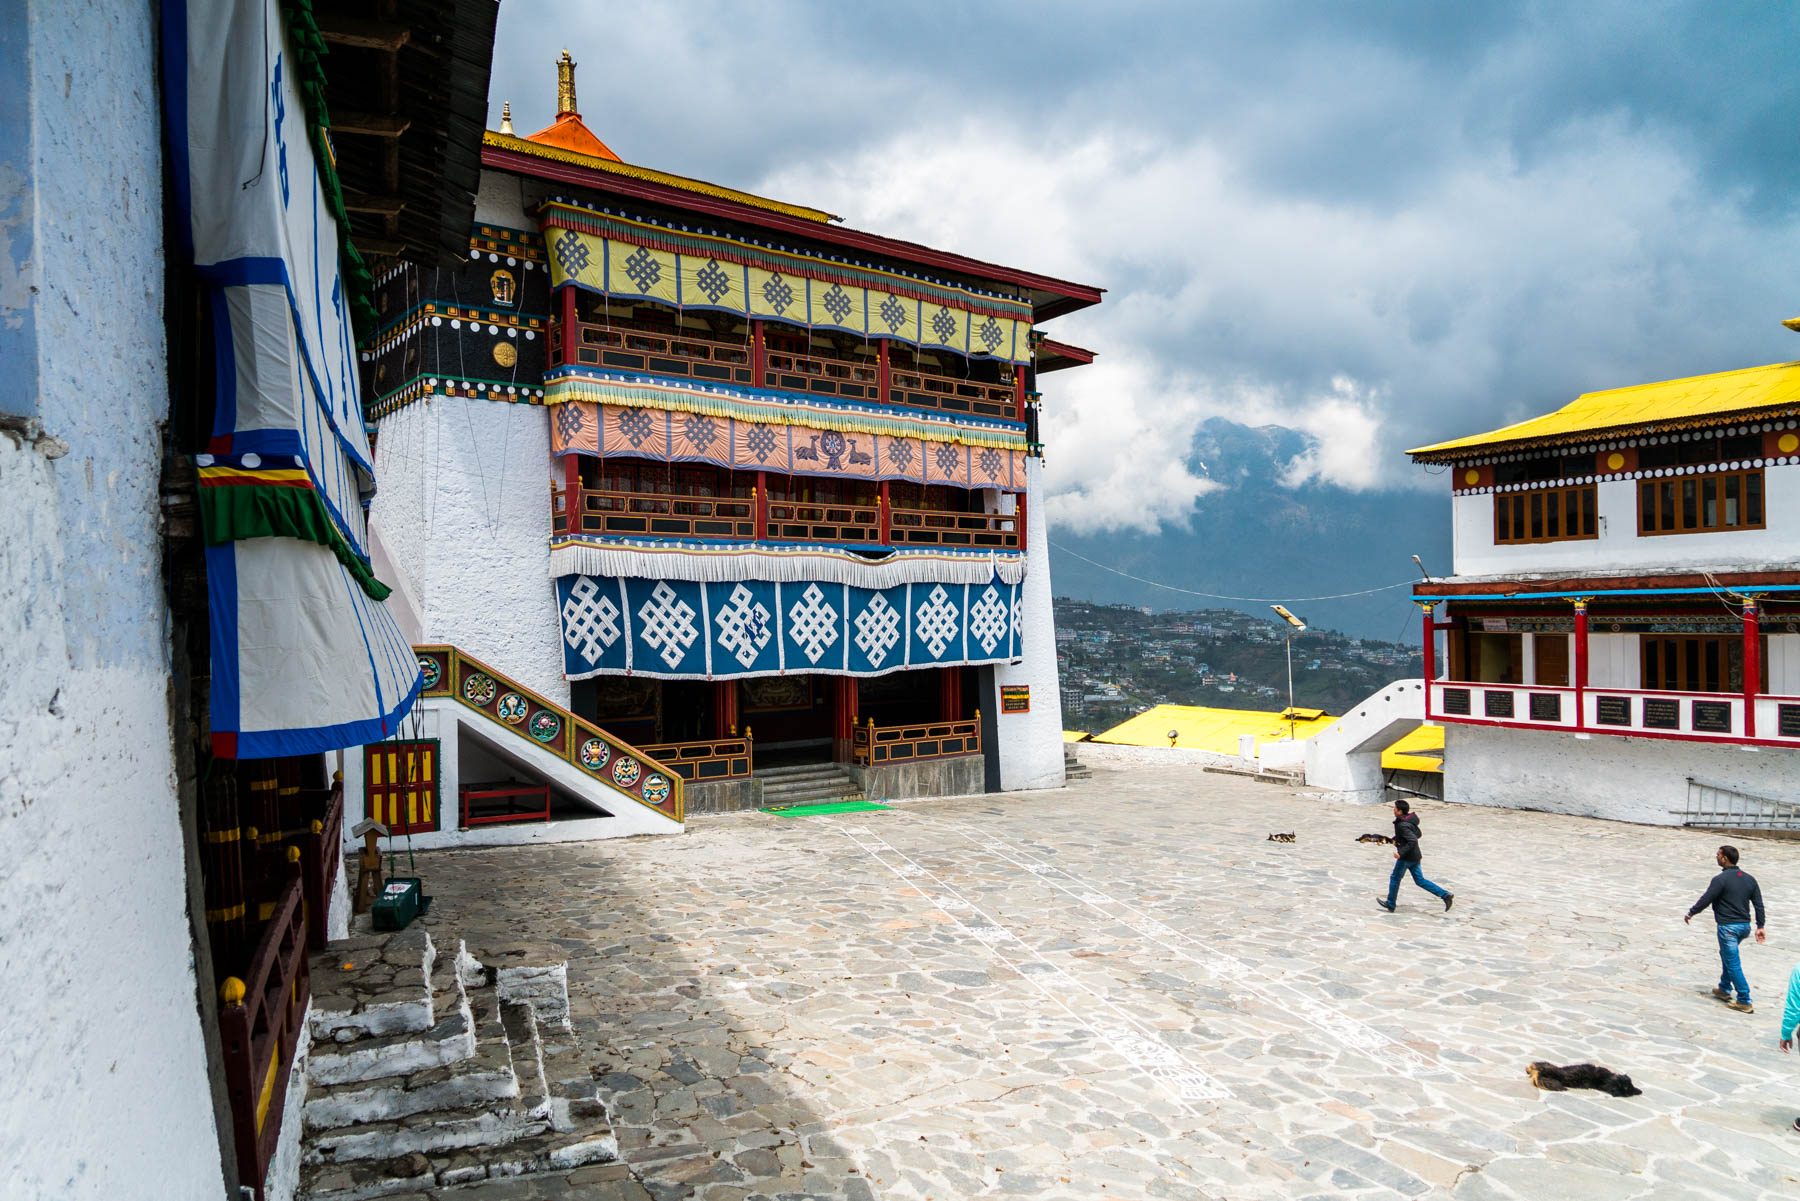 Travel guide to backpacking on a budget in Arunachal Pradesh, India - Tourists in Tawang - Lost With Purpose